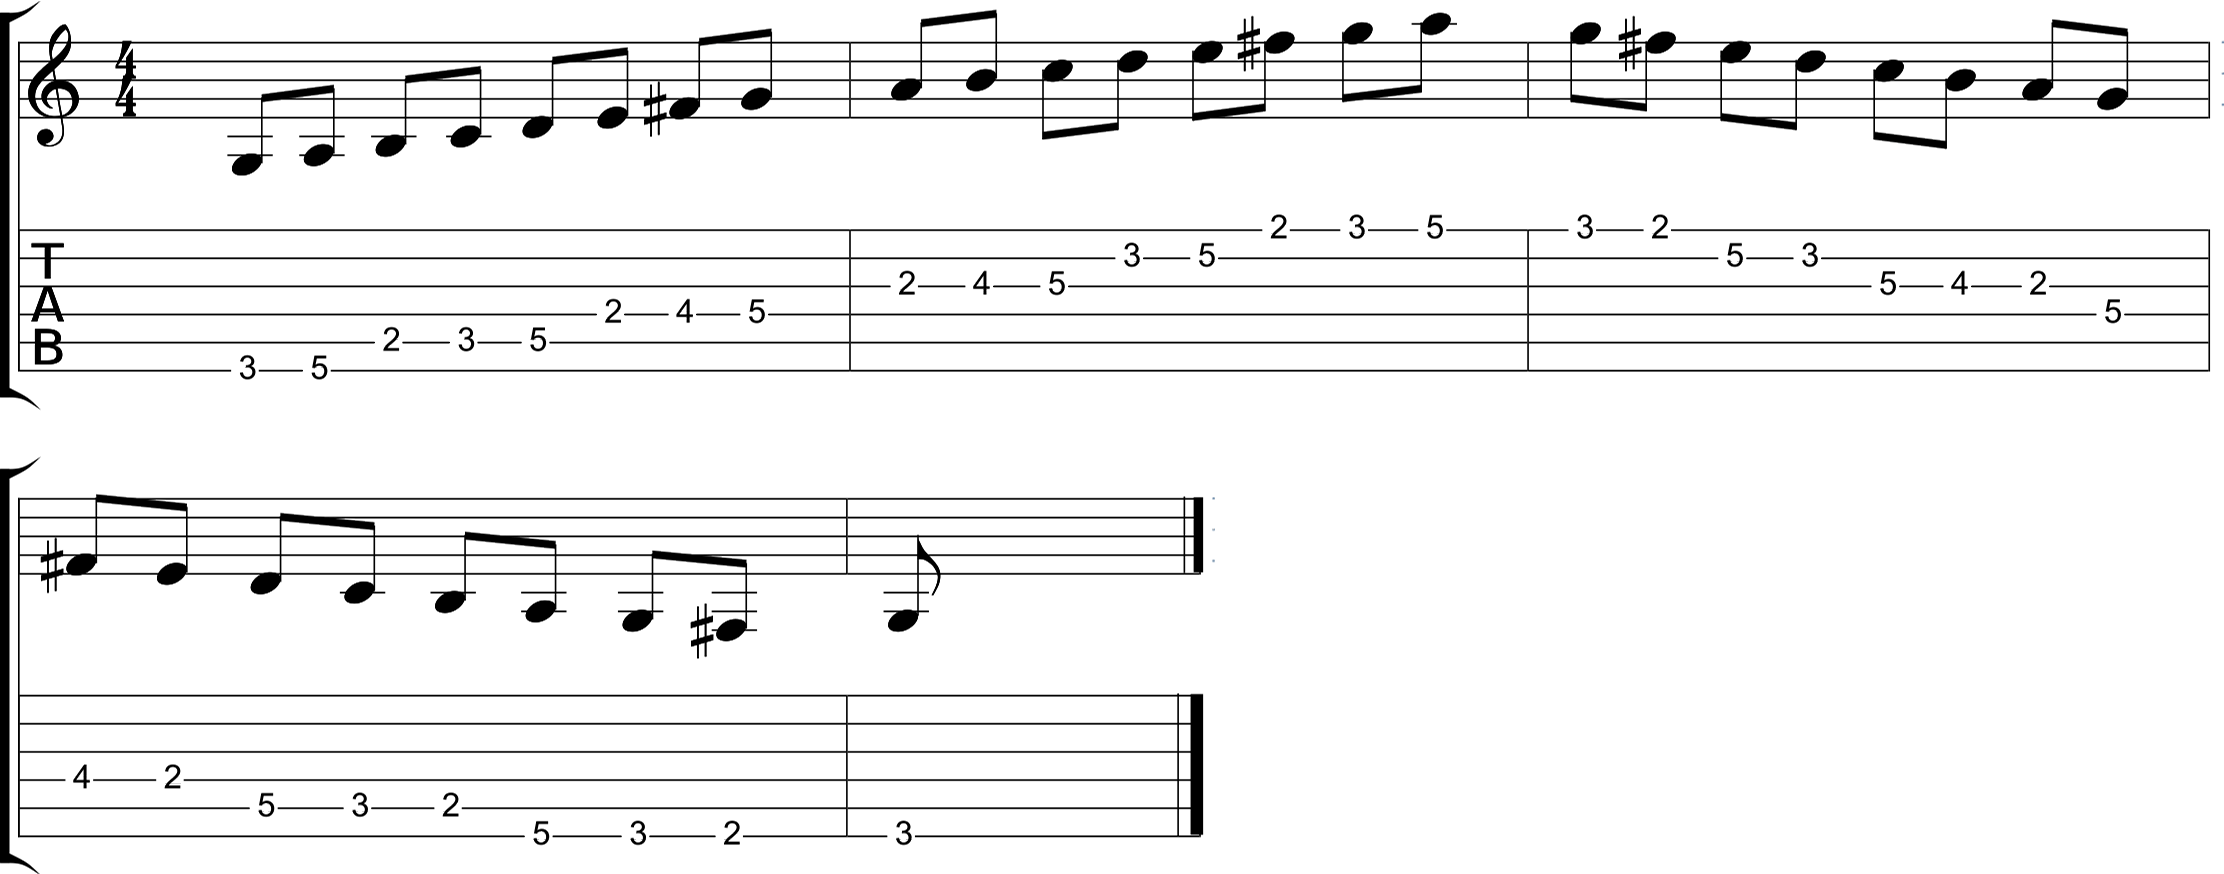 Guitar practice routine alternate picking for beginners tablature G major scale two octave box position shape